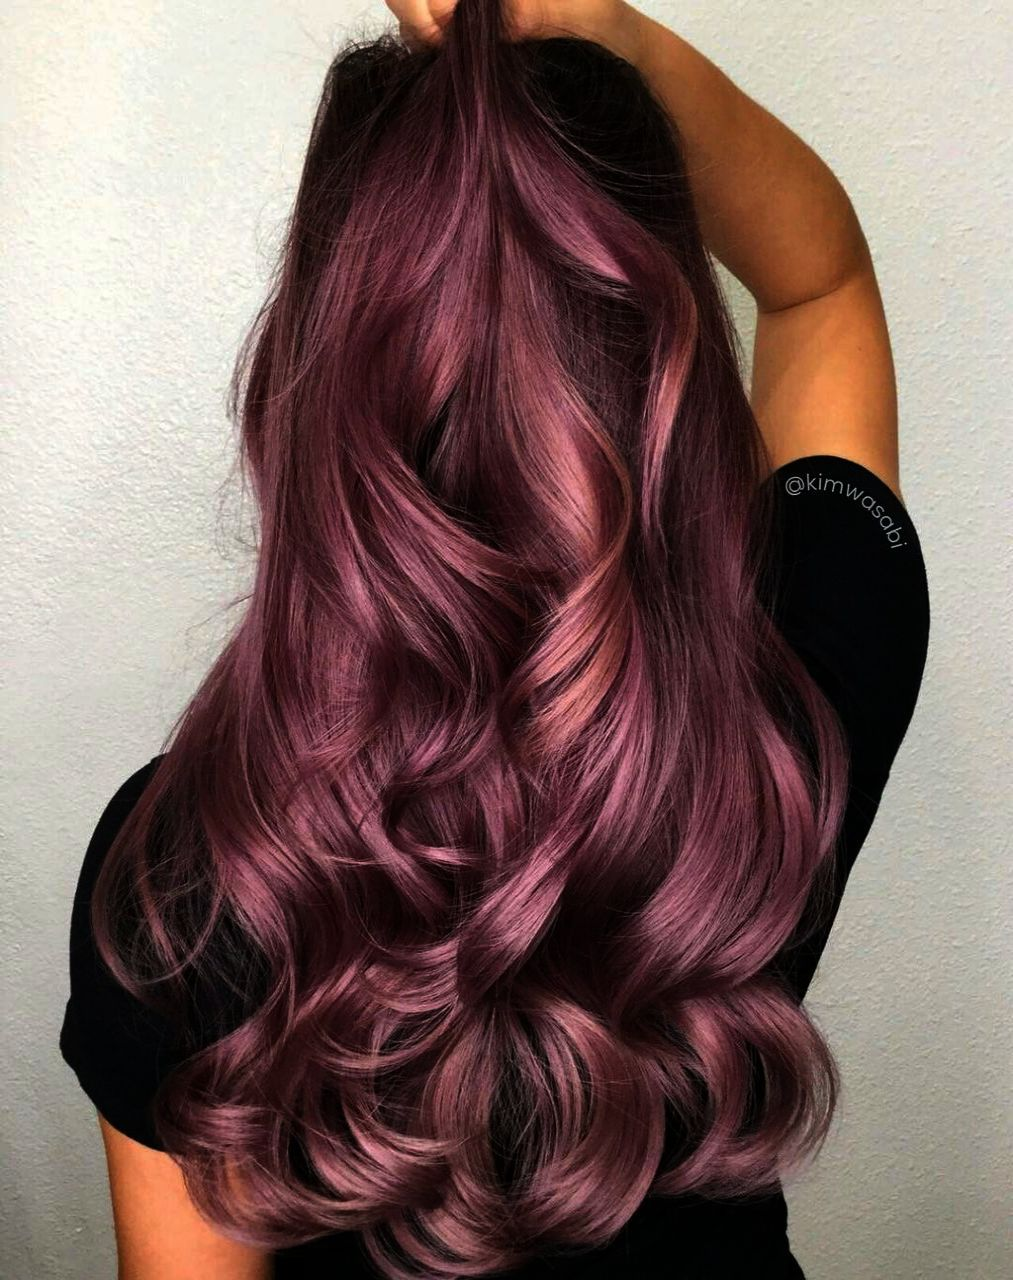 Red Hair Color Ideas For Fair Skin And Blue Eyes Hair Extensions Dallas Hair Color Ideas For Short Fine Magenta Hair Hair Color For Fair Skin Hair Dye Colors